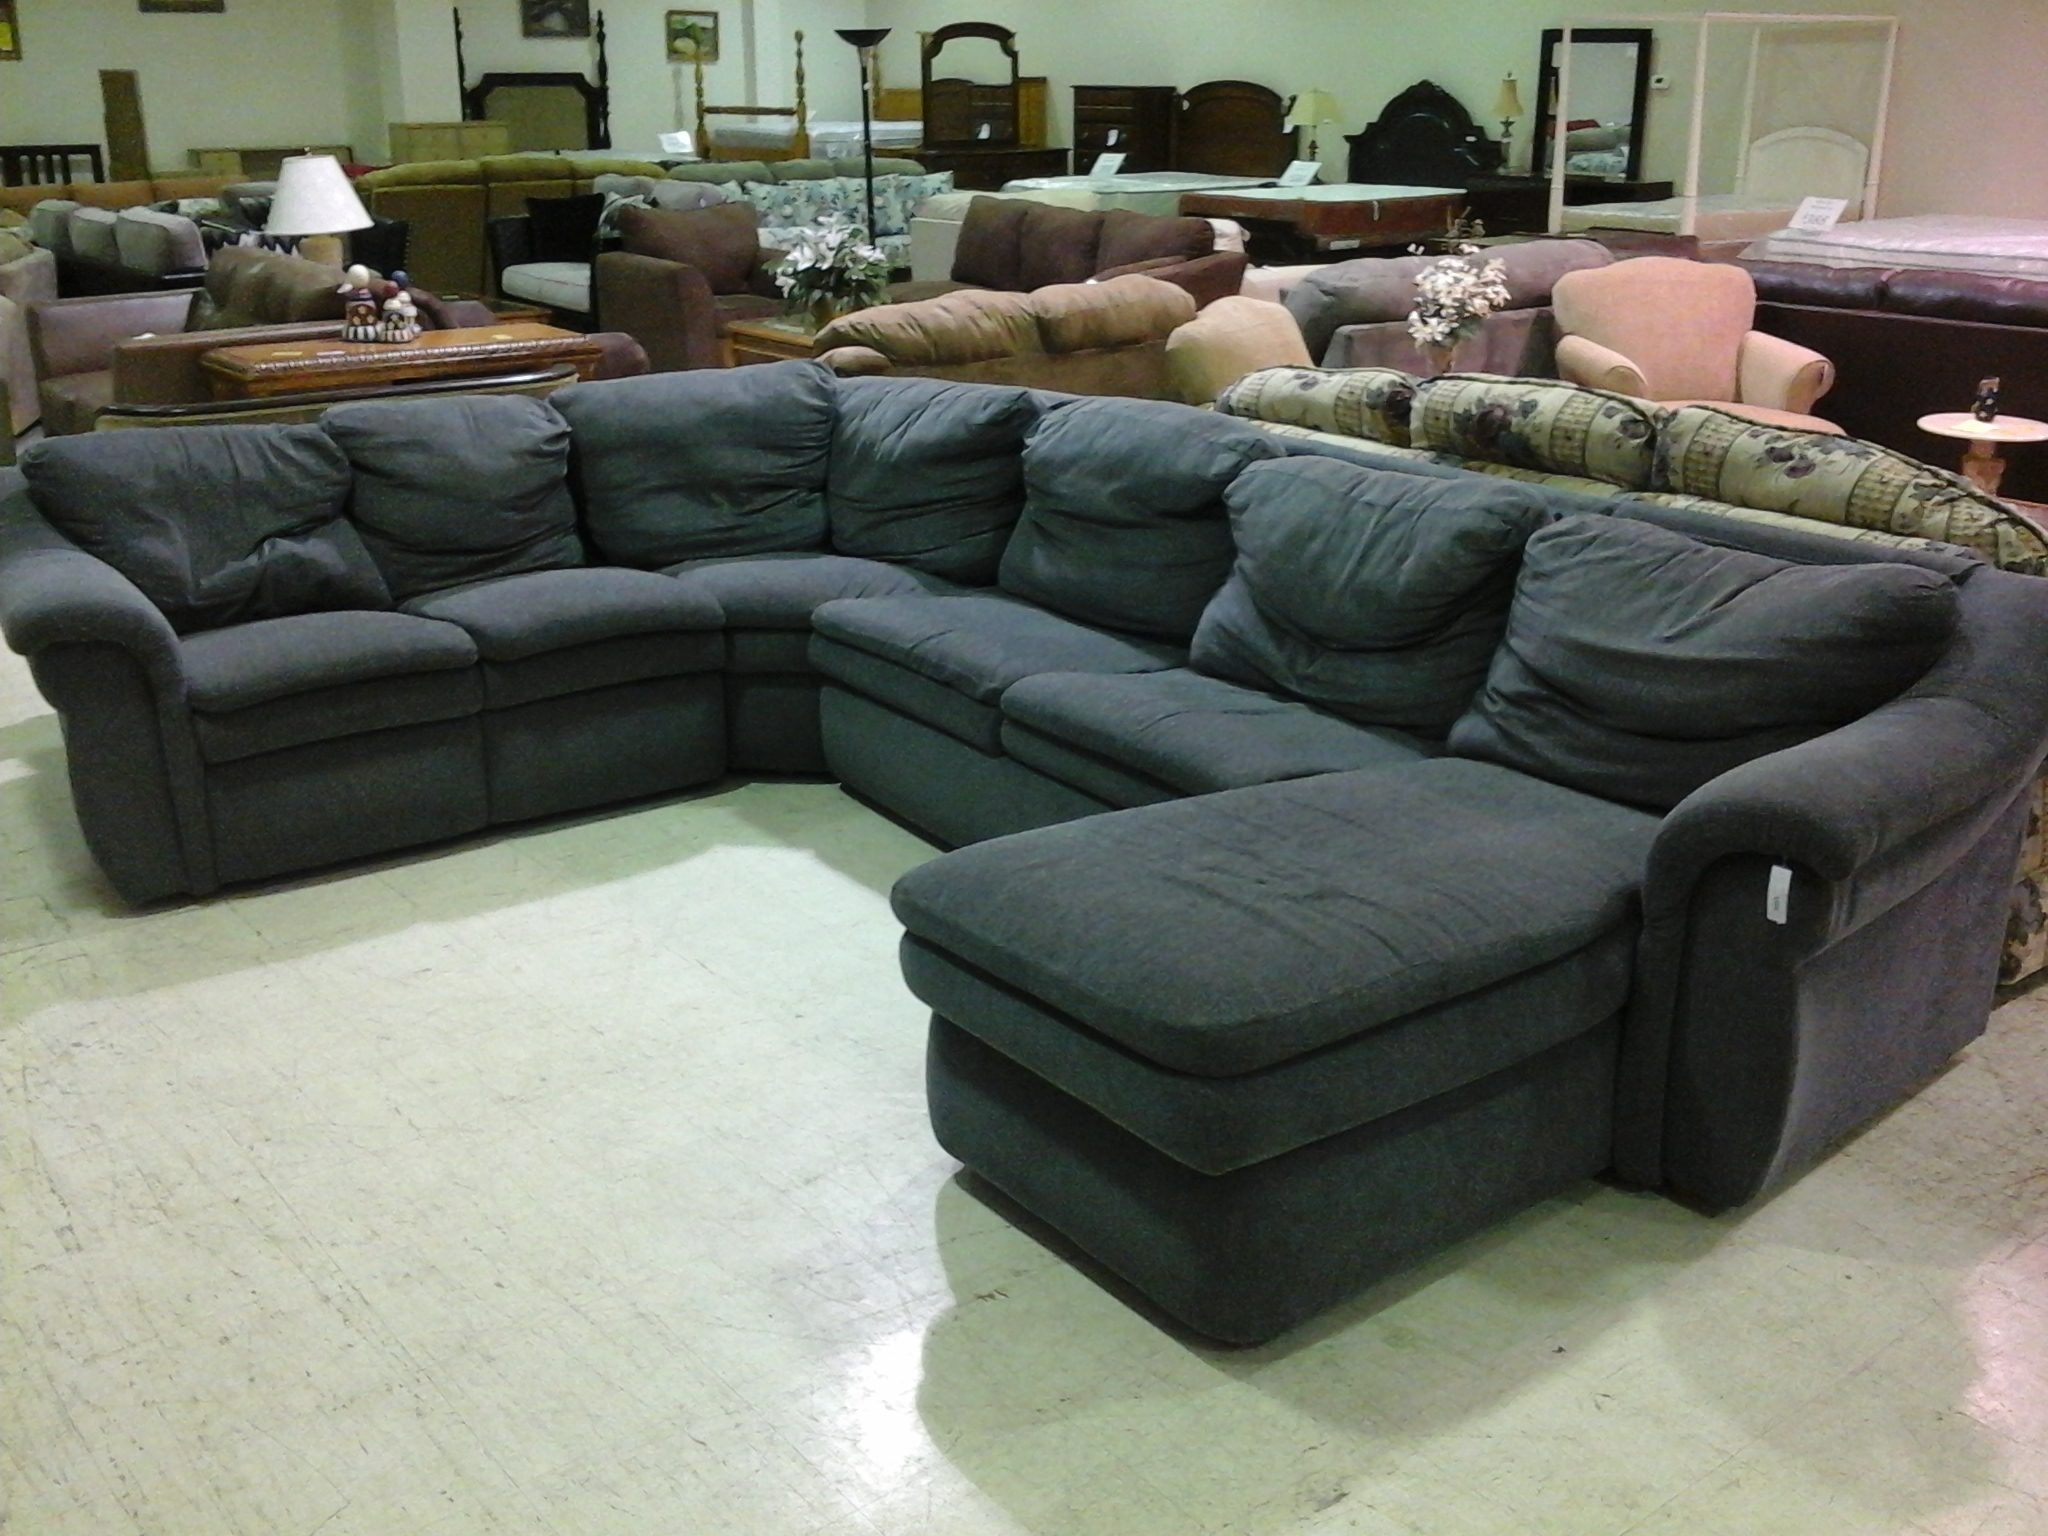 Queen Sofa Sleeper Sectional Microfiber | Functionalities inside Sectional Sofas At Calgary